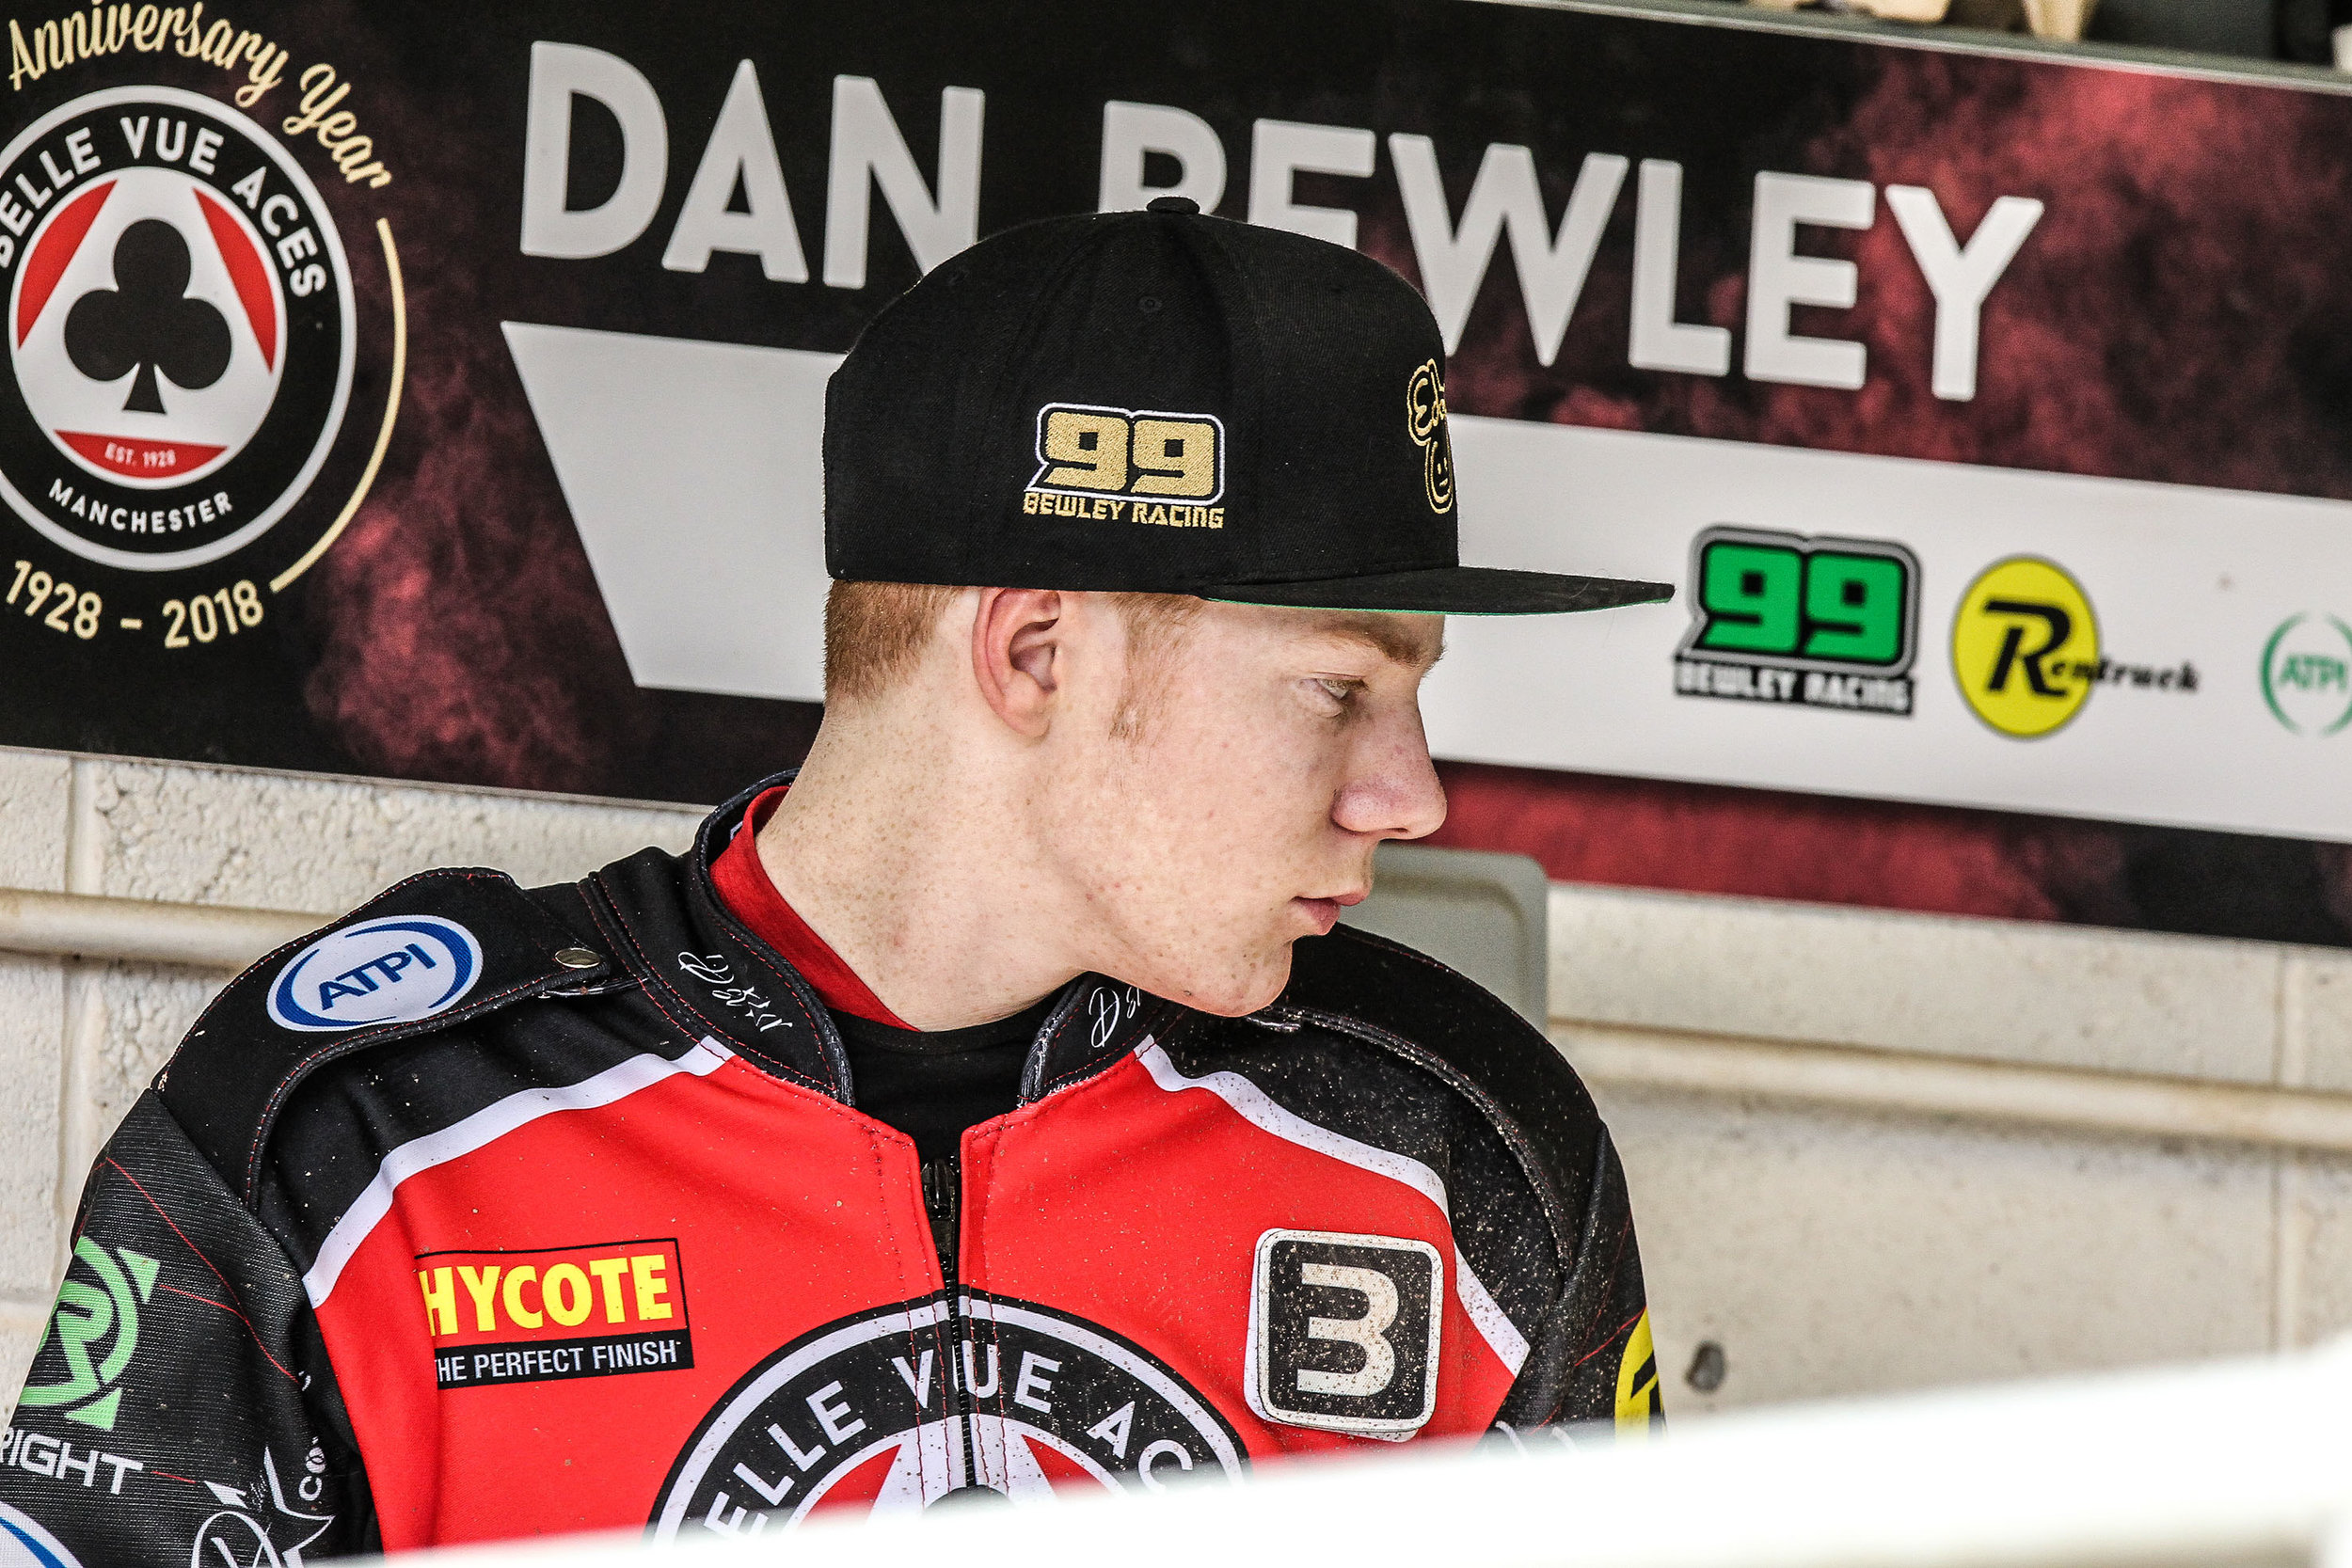 Dan Bewley made a triumphant return to the track after a couple of weeks out with a back injury